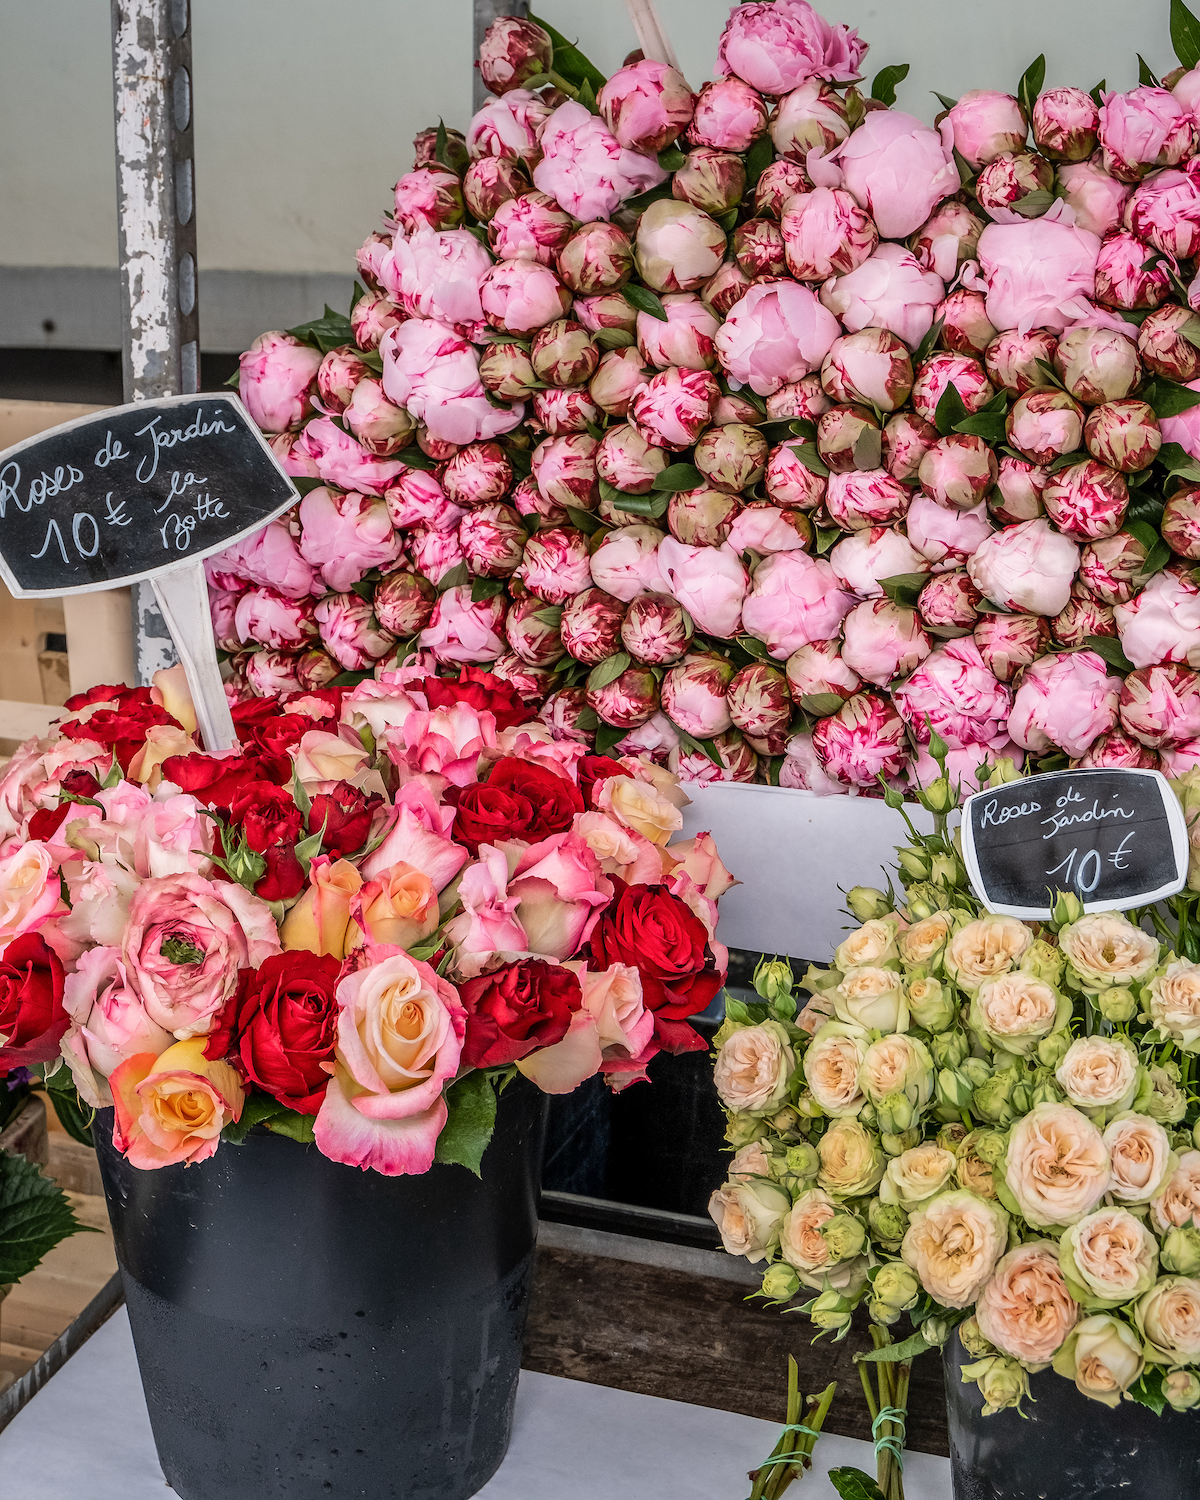 peonies and garden roses at the marché. five friday finds from france featuring the best ice cream in paris at il gelato del marchese and a hôtels particuliers de paris book